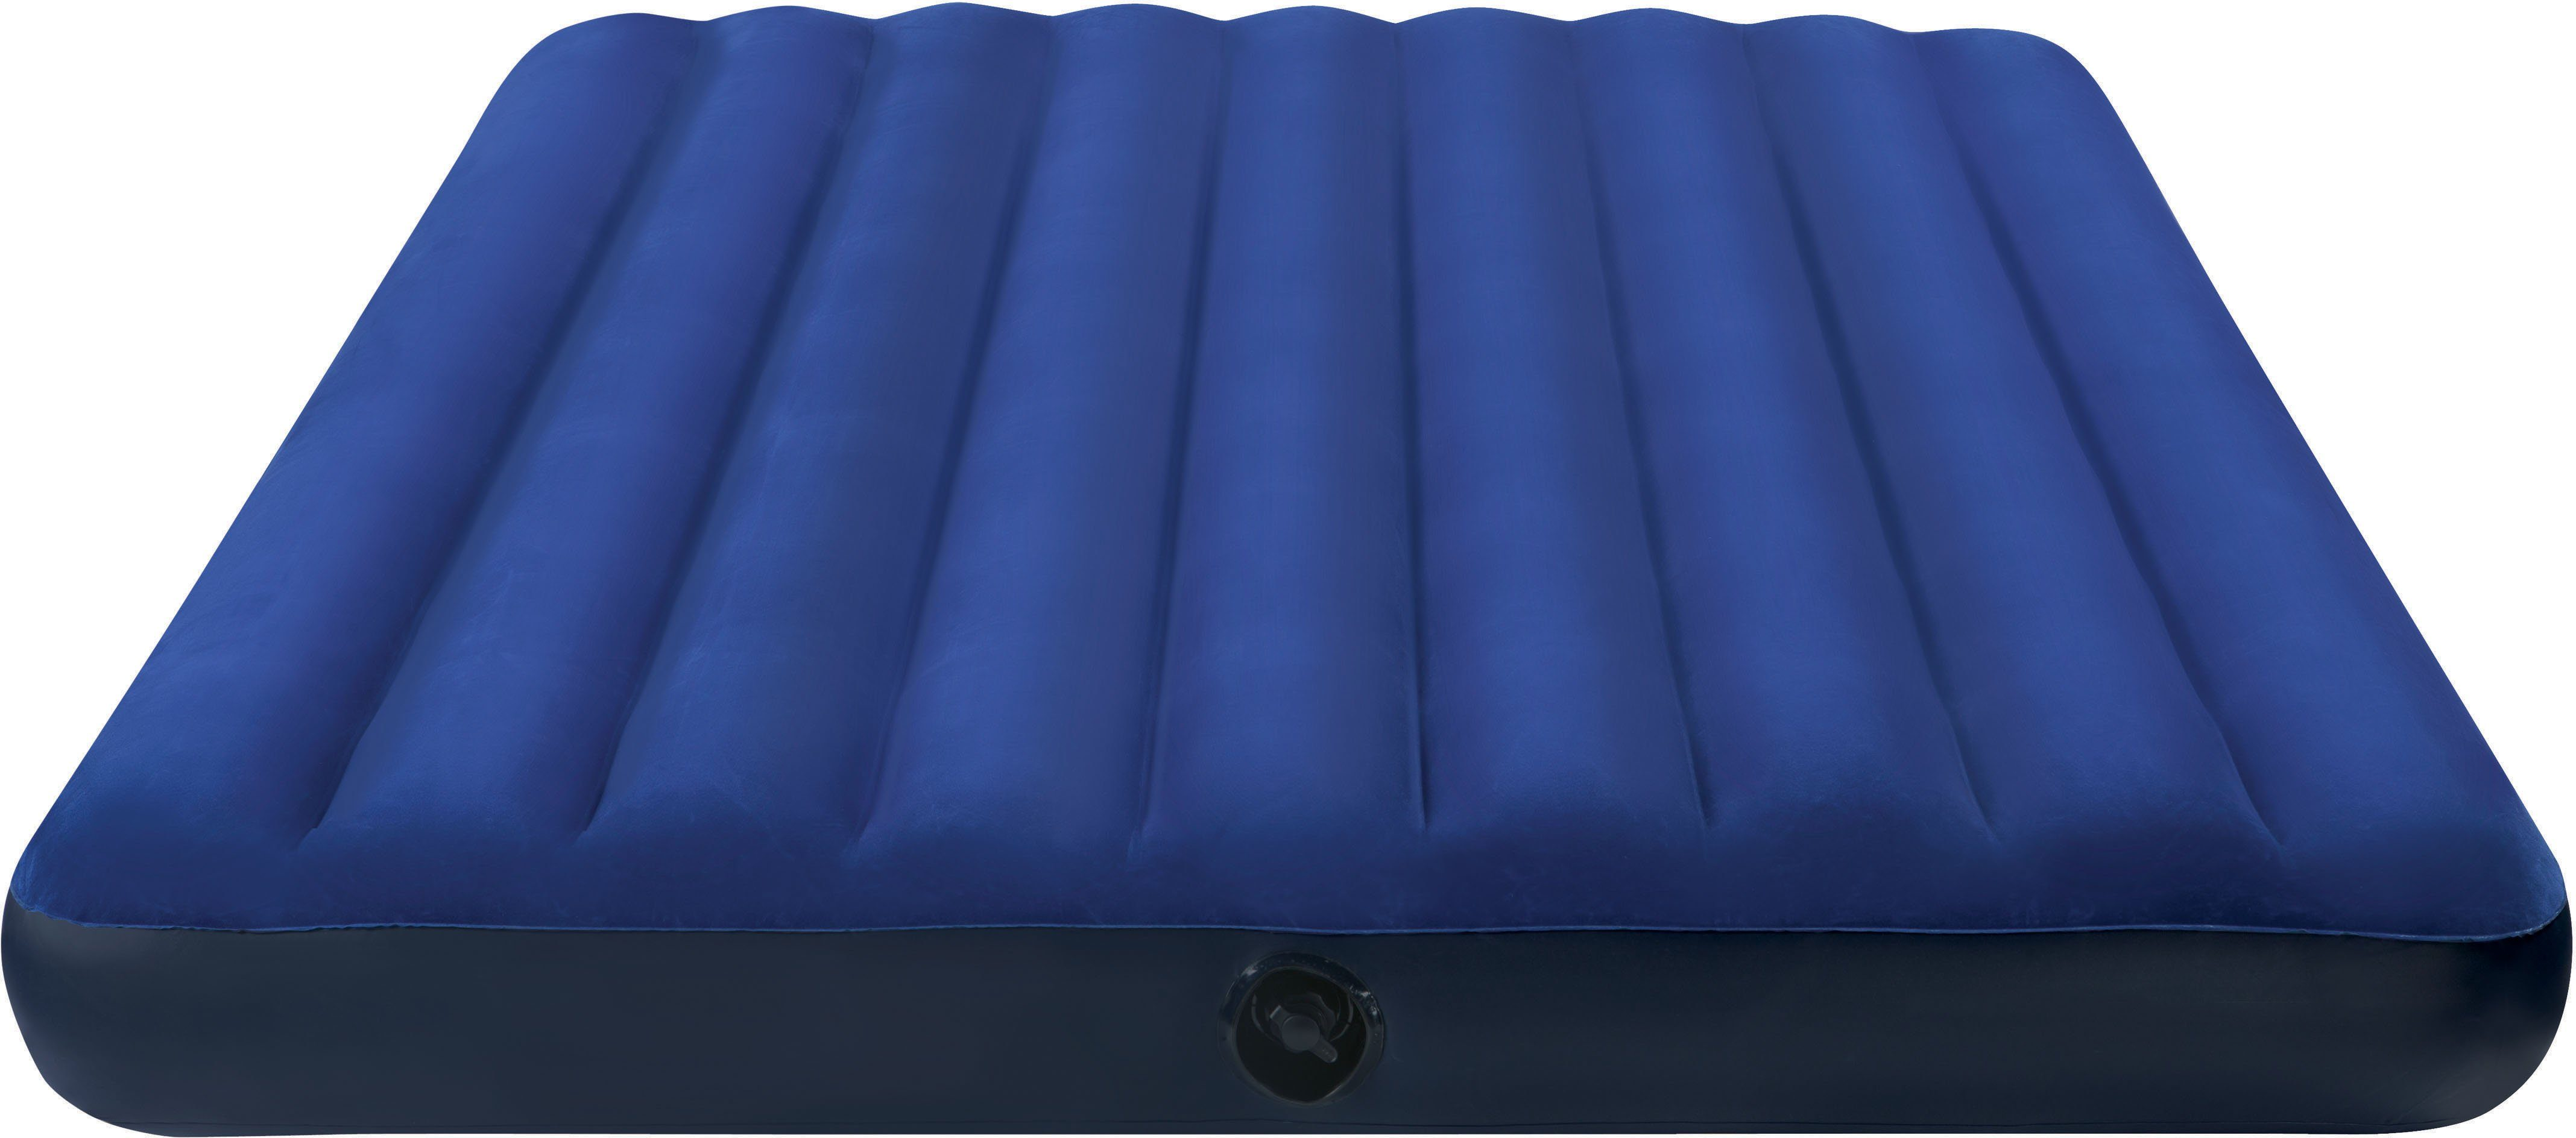 Intex Luftbett, 191/76/22 cm, blau, »Classic Downy Bed«